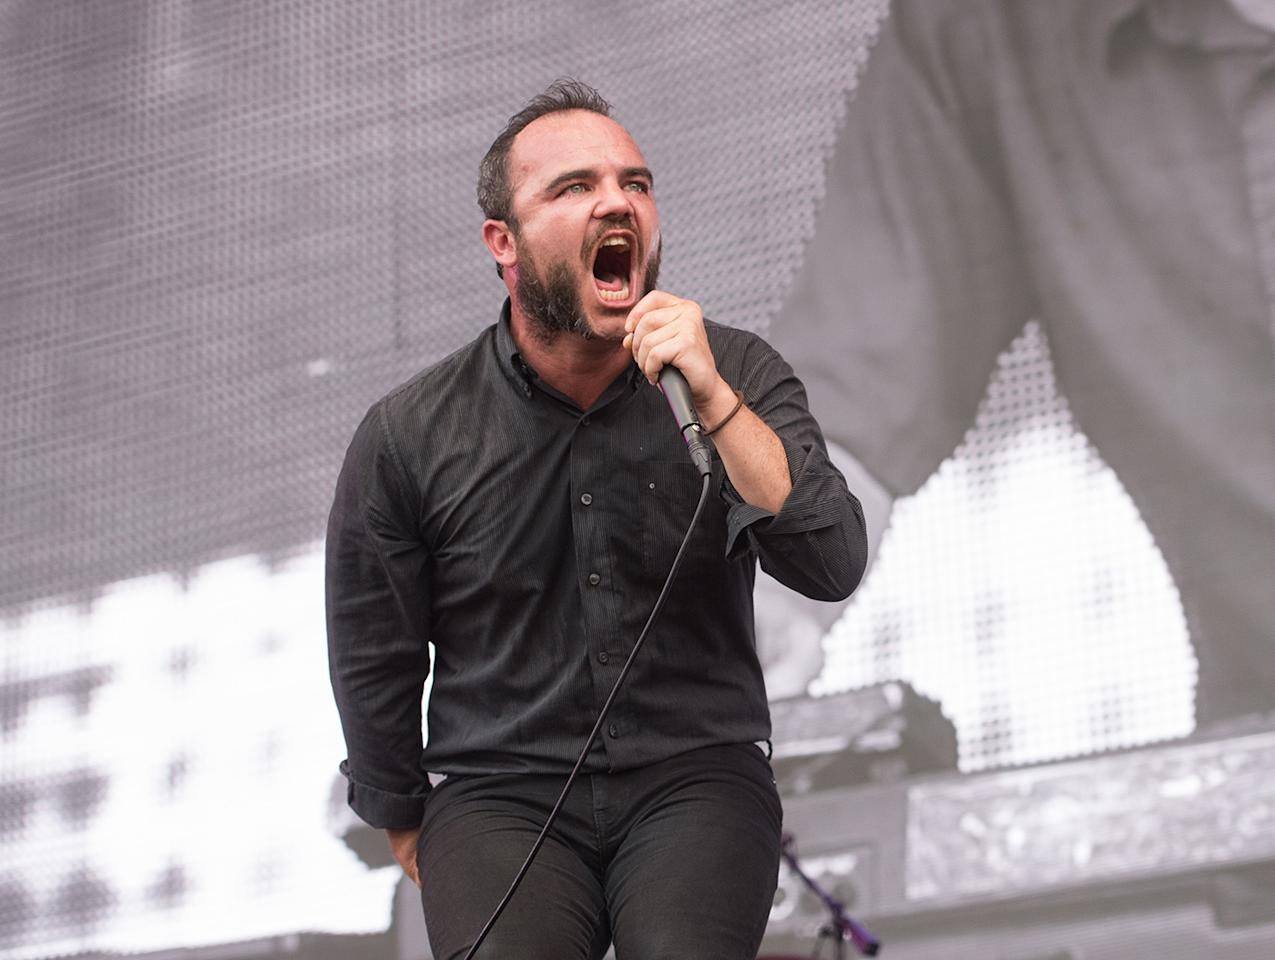 <p>Samuel Herring of Future Islands performs during 2017 Panorama Music Festival at Randall's Island on July 28, 2017 in New York City. (Photo by Noam Galai/WireImage) </p>